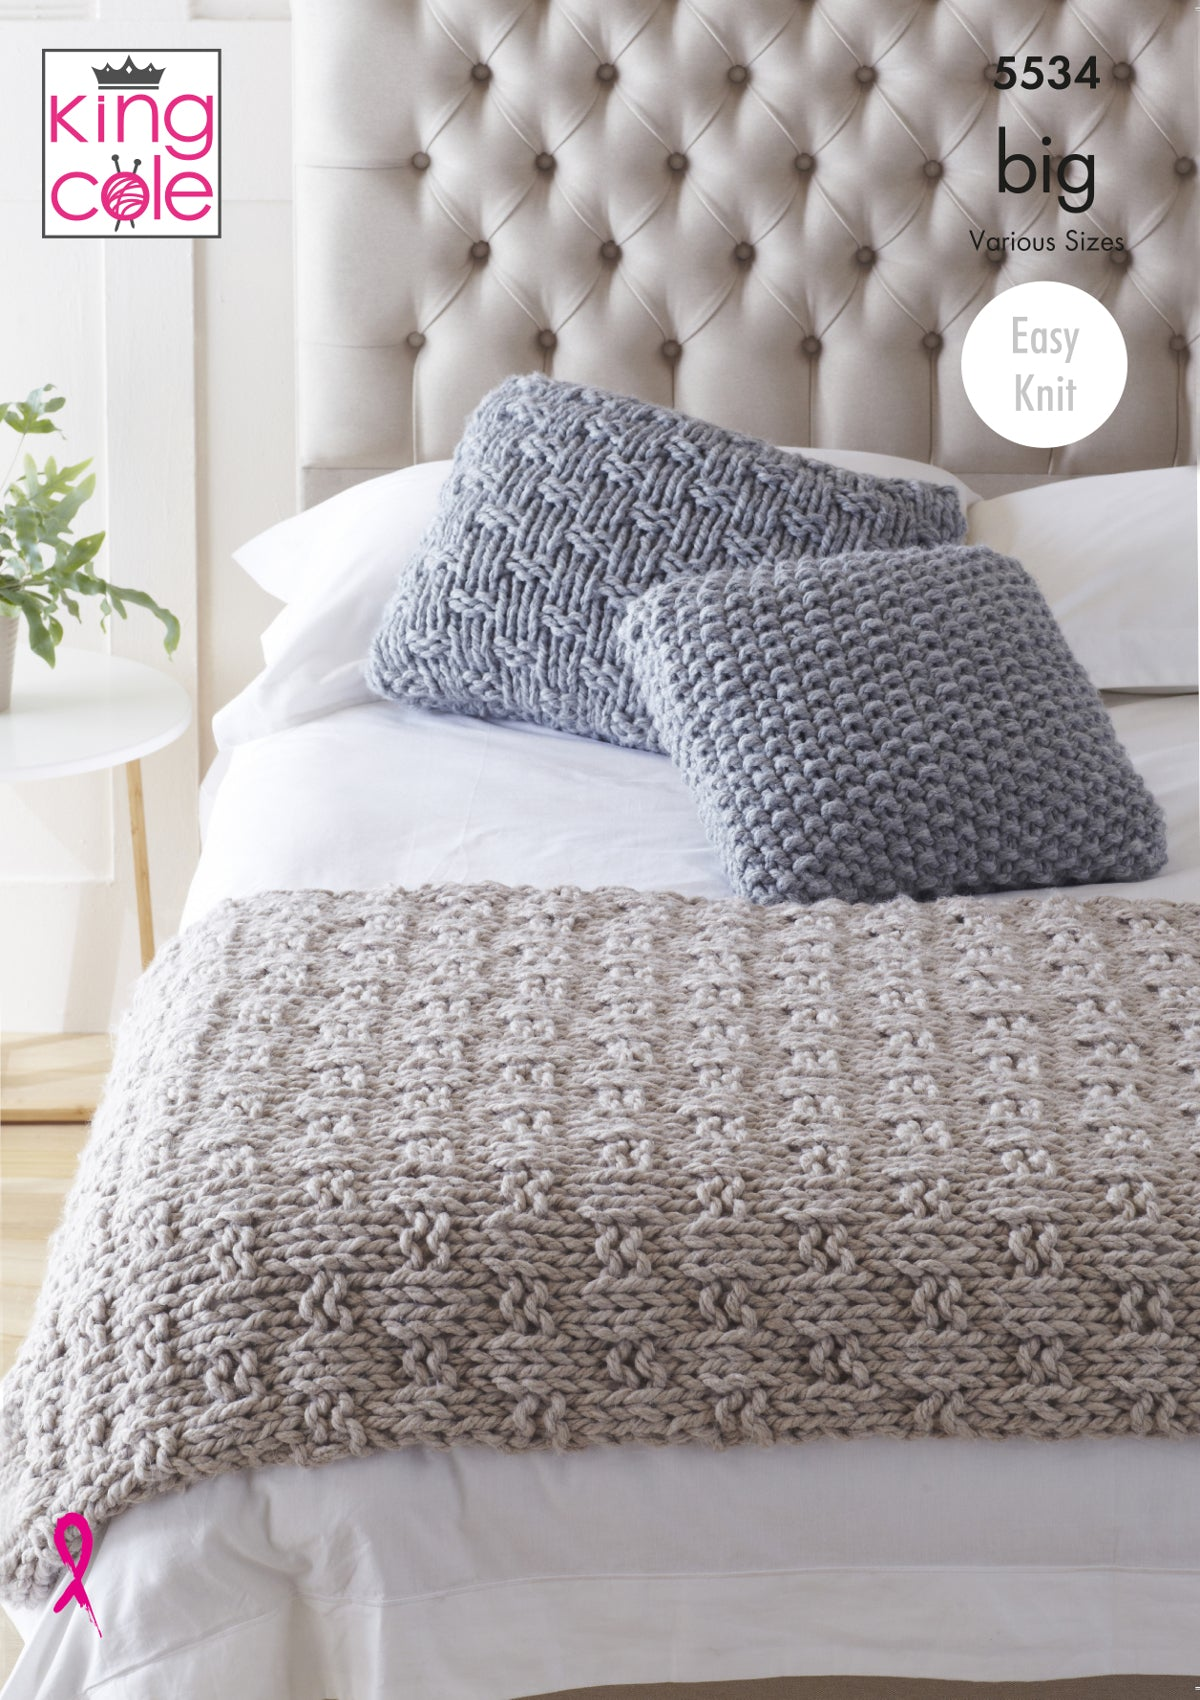 King Cole Super Chunky Knitting Pattern Bed Runner Cushions 5534 Mill Outlets